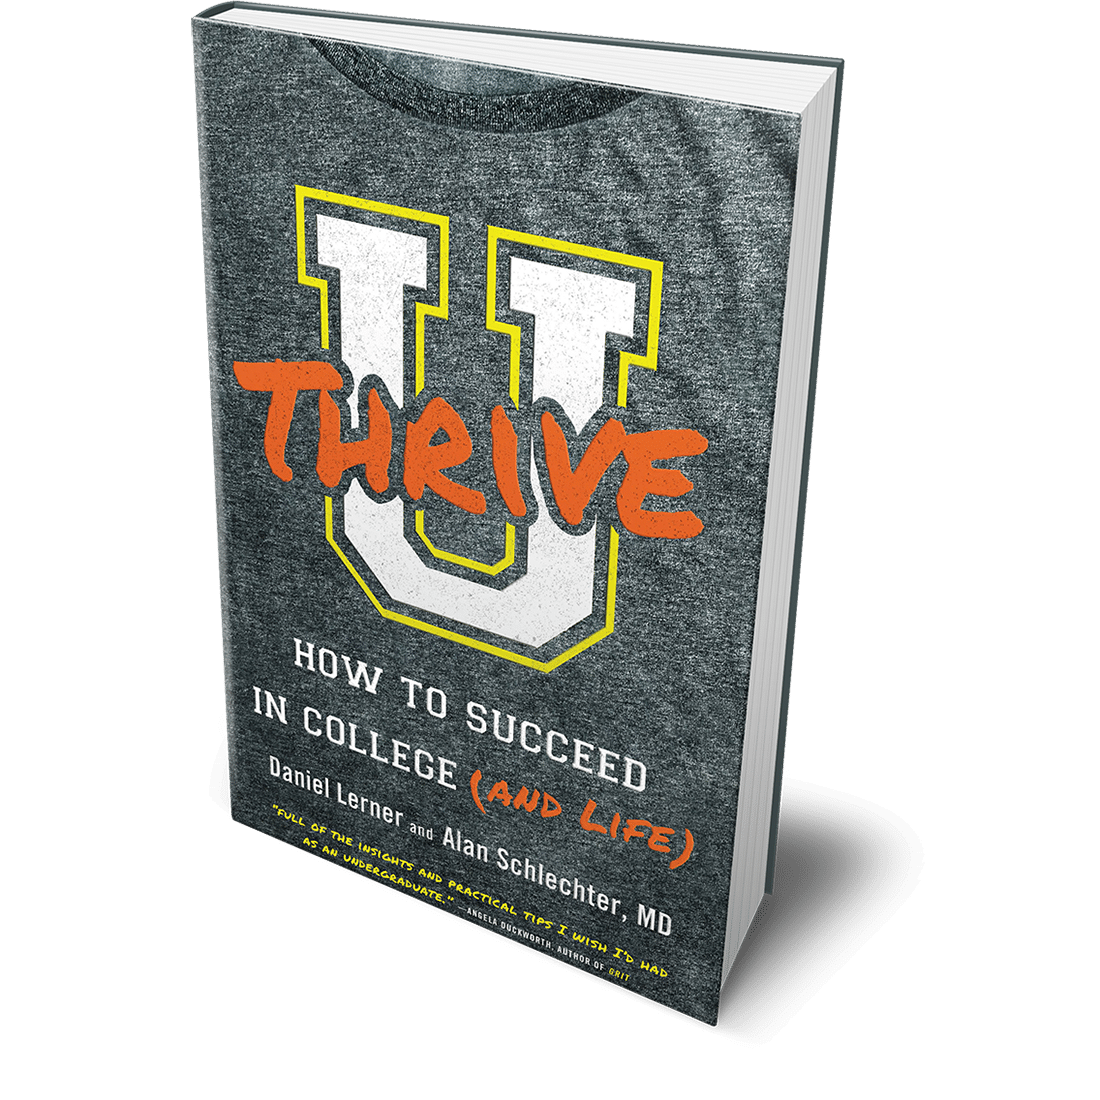 Dan Lerner's new book, U Thrive